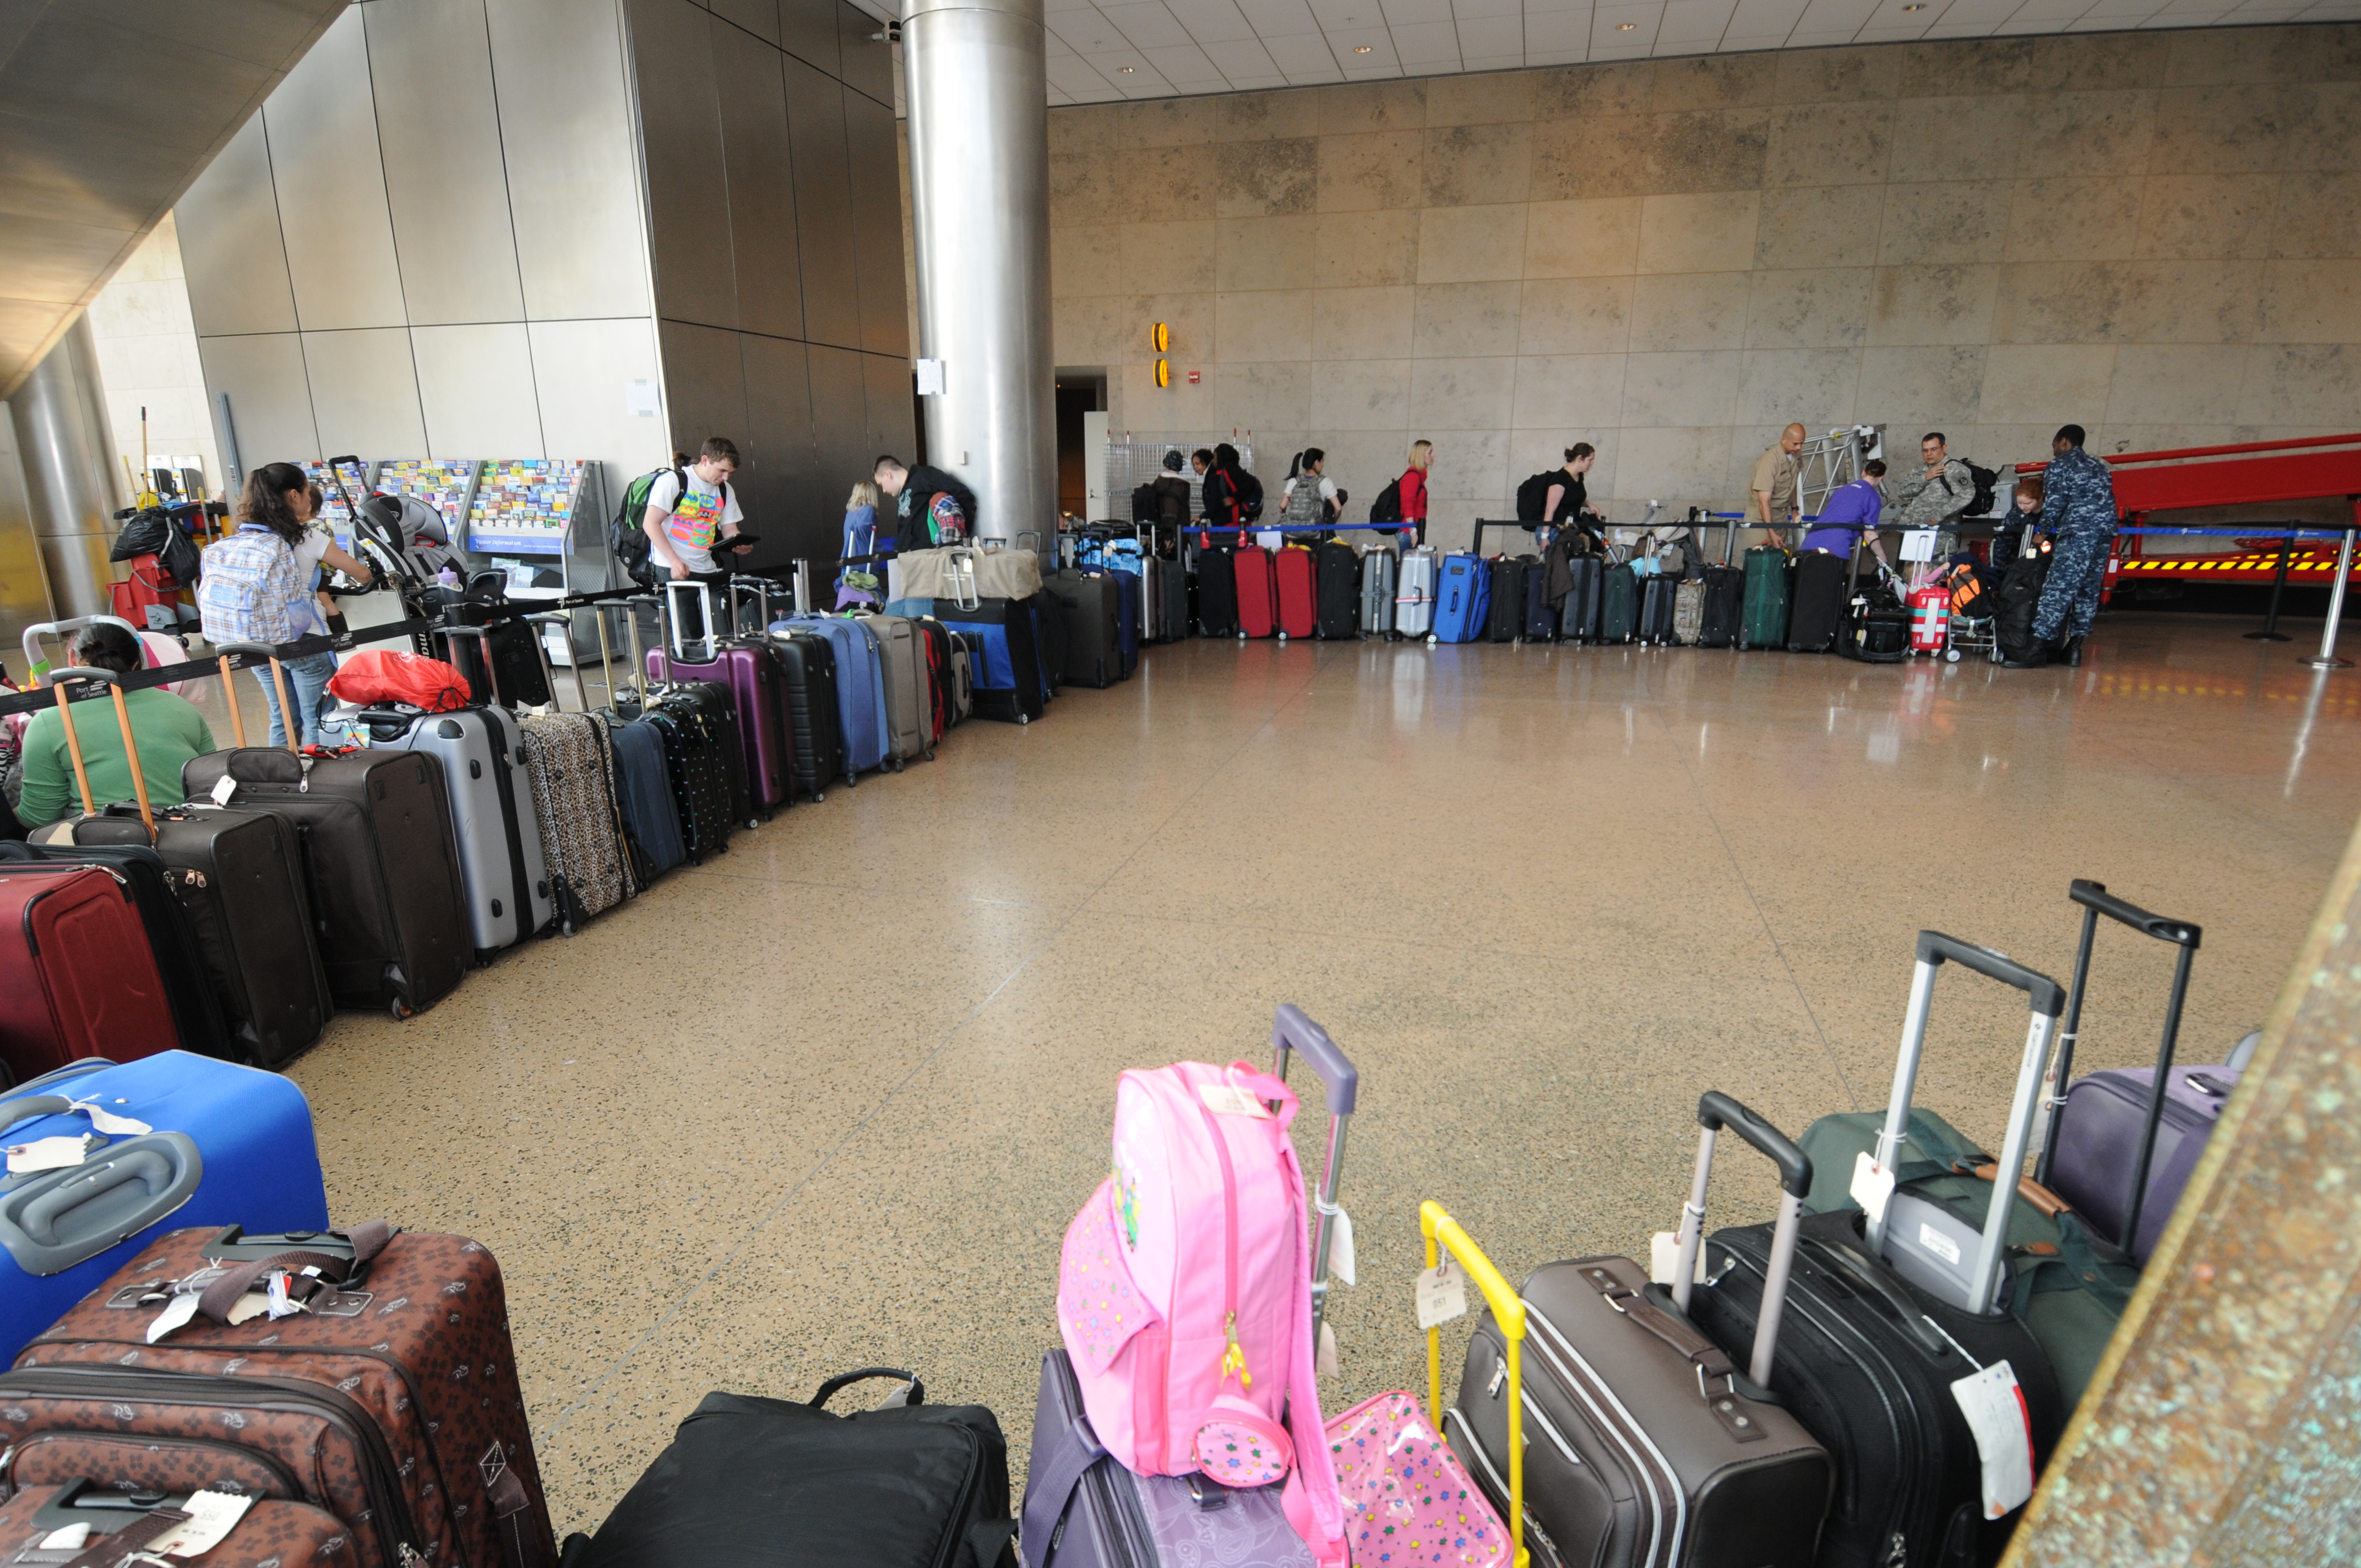 File:US Navy 110322-N-AE328-011 Luggage starts to pile up as ...